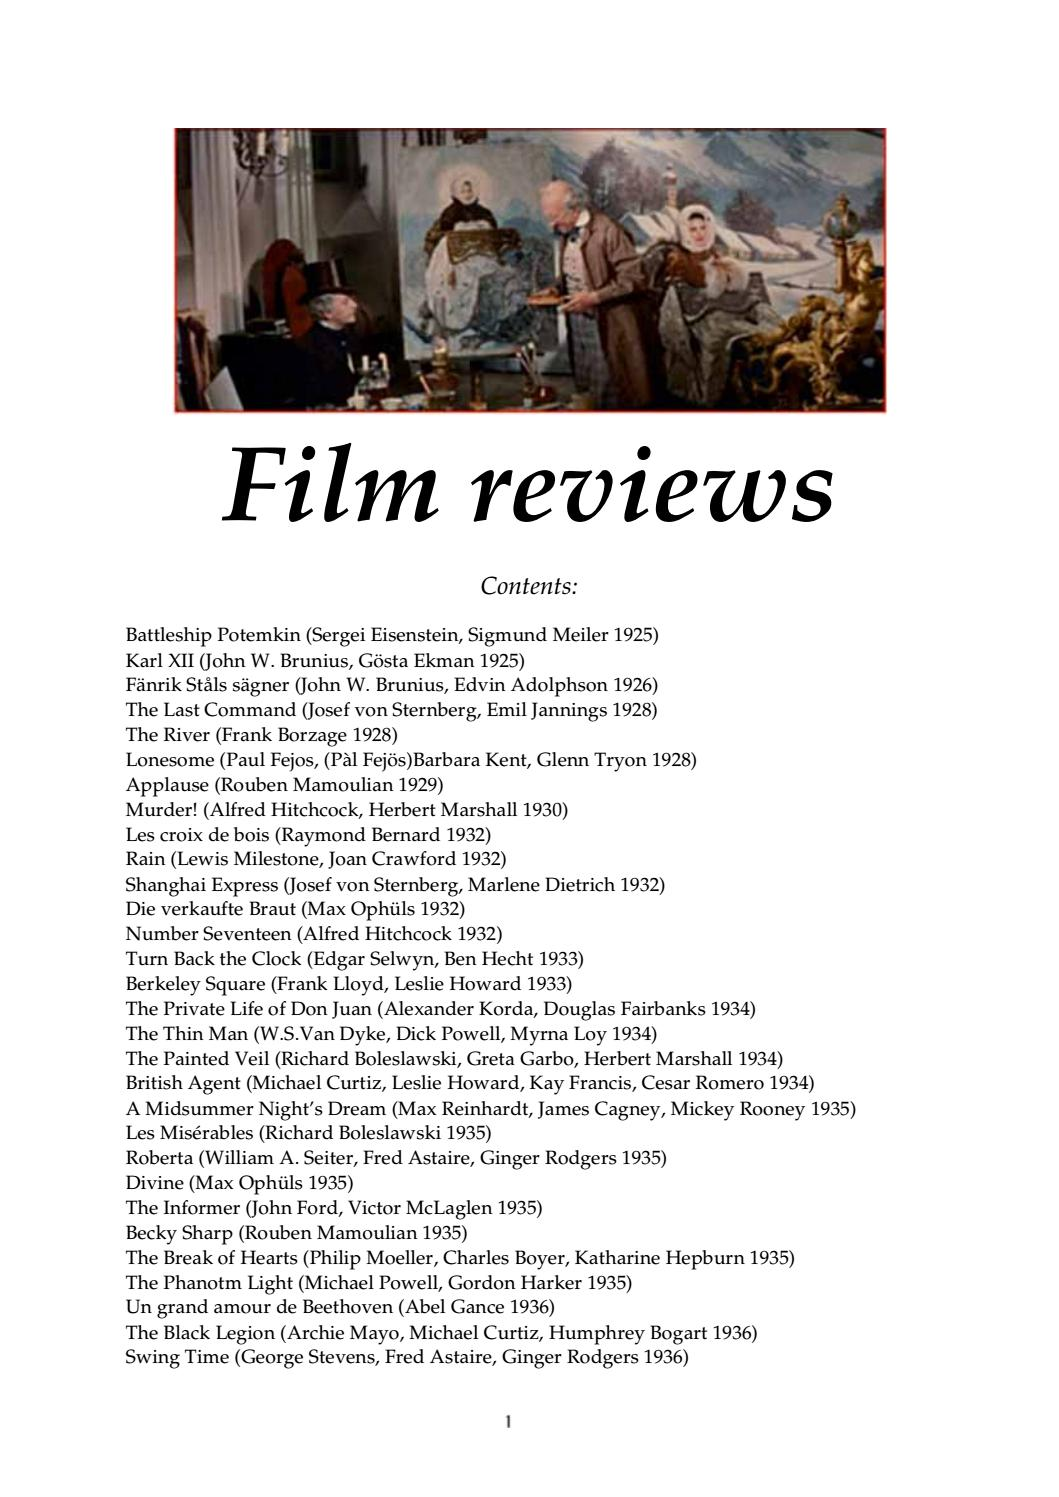 Film reviews by Christian Lanciai - issuu